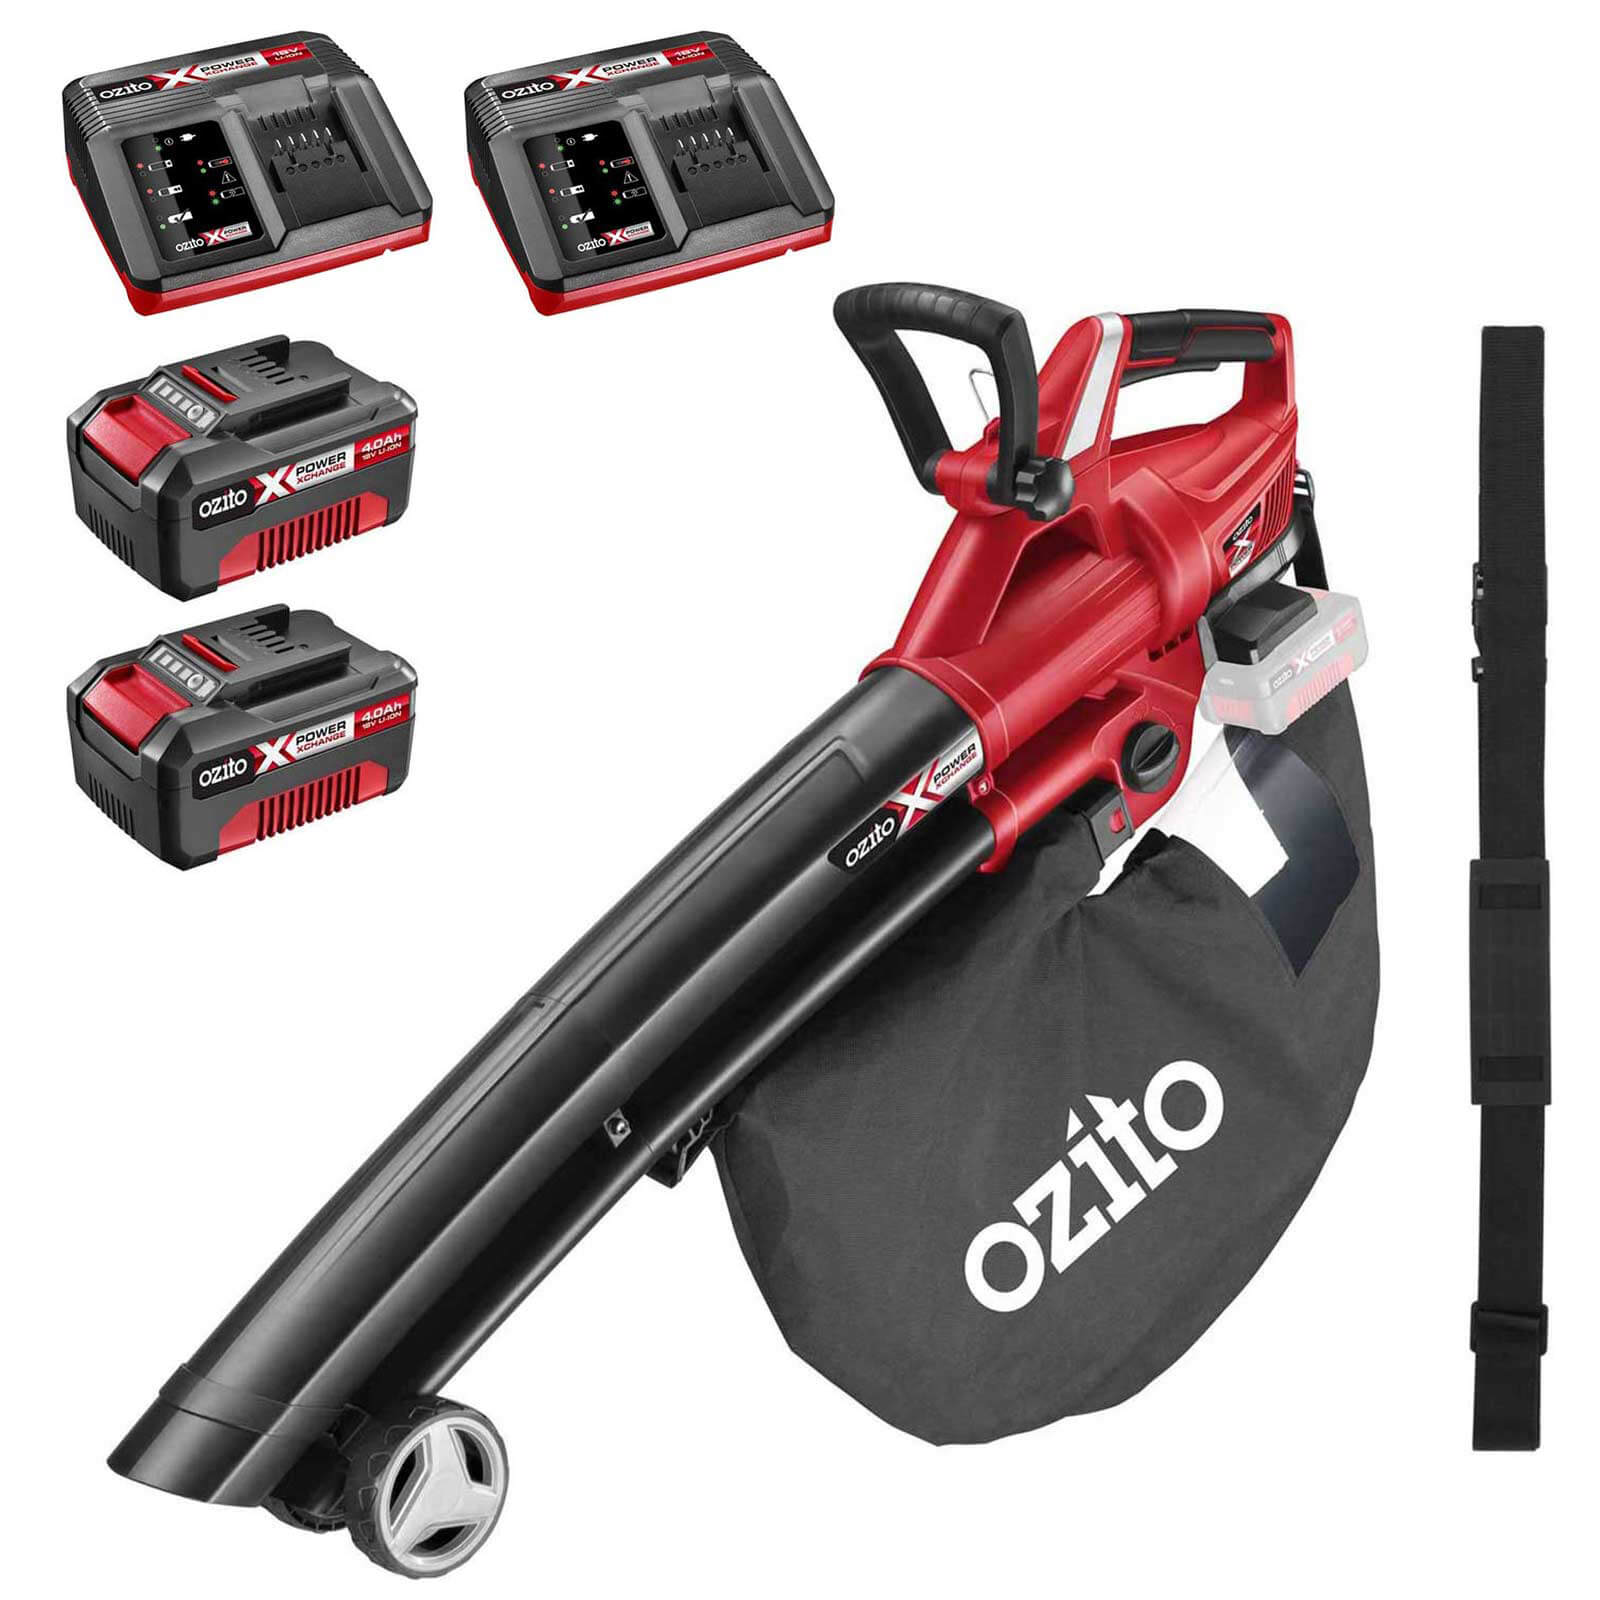 Ozito PXCBLVS 36v Cordless Brushless Garden Vacuum and Leaf Blower (Uses 2 x 18v) 2 x 4ah Li-ion Twin Battery Charger